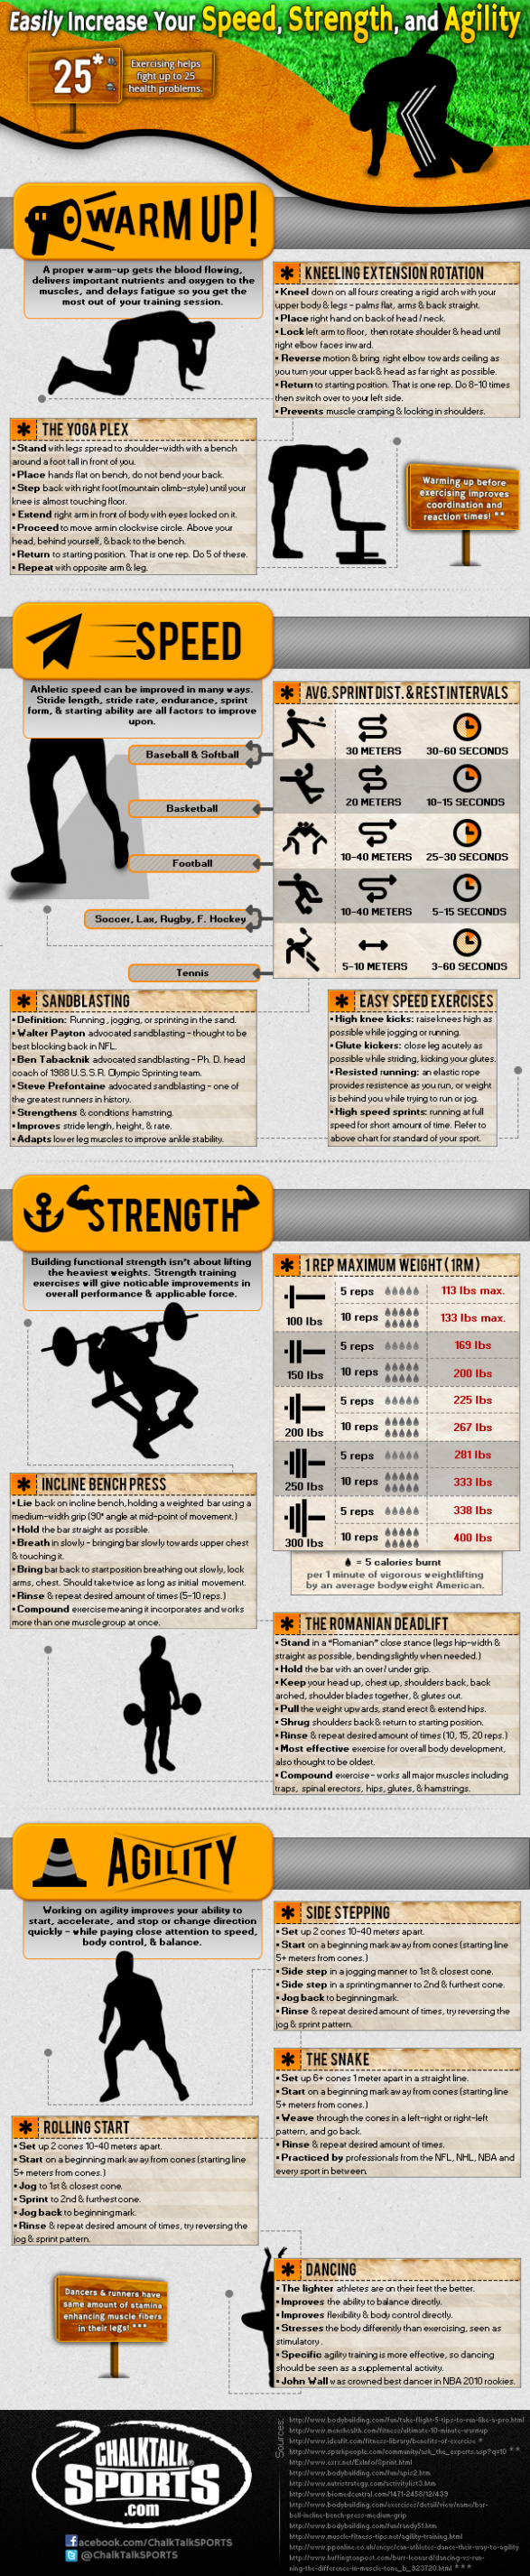 Easily Increase Your Speed, Strength, & Agility